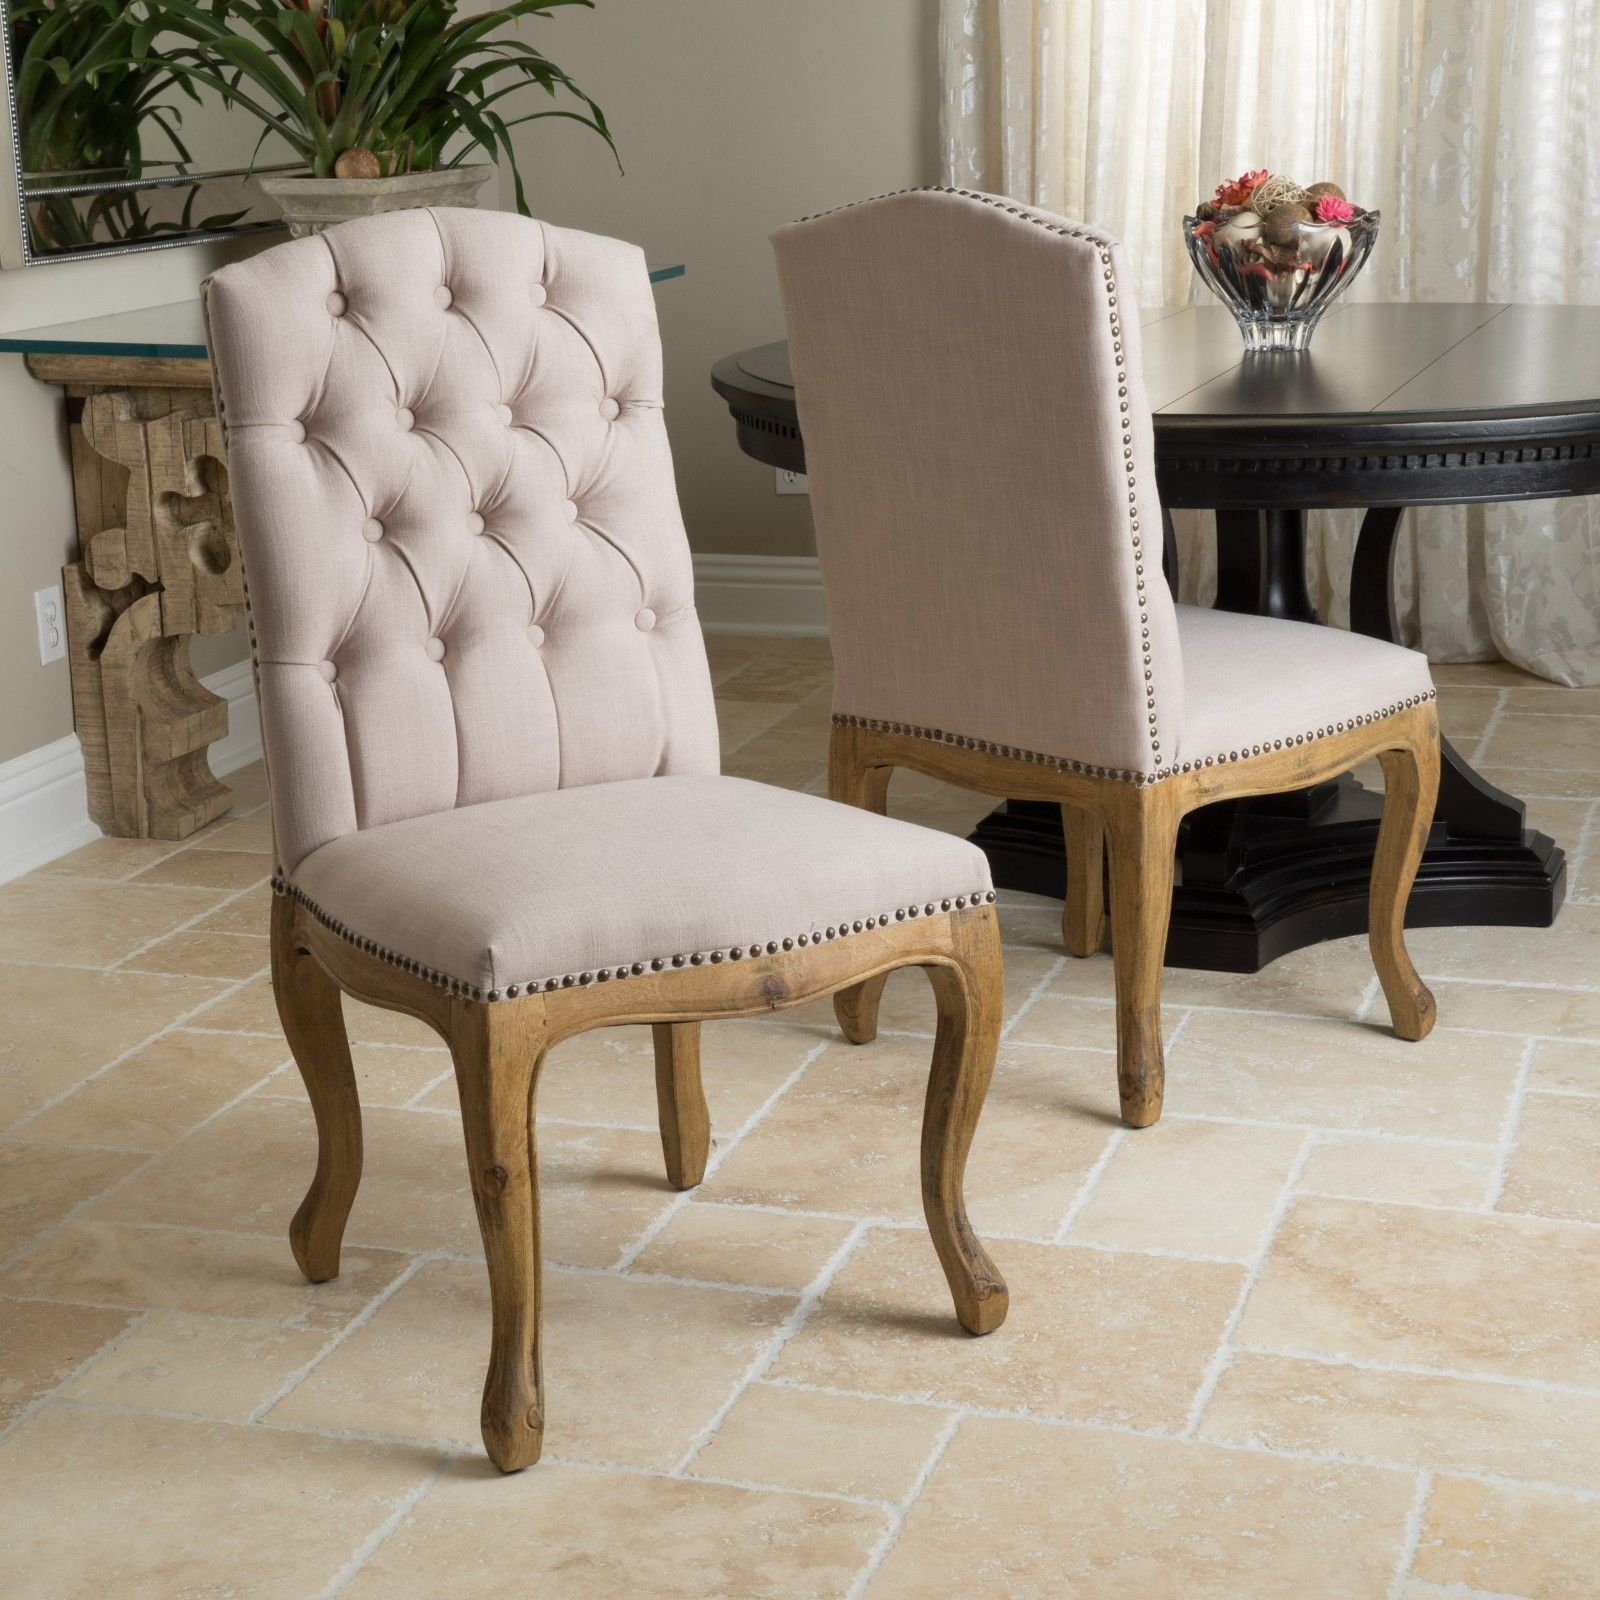 Set Of 2 French Vintage Design Weathered Wood Dining Chairs W Nailhead Accents Chairs Nailhead Ac Tufted Dining Chairs Dining Chairs Dining Chairs For Sale